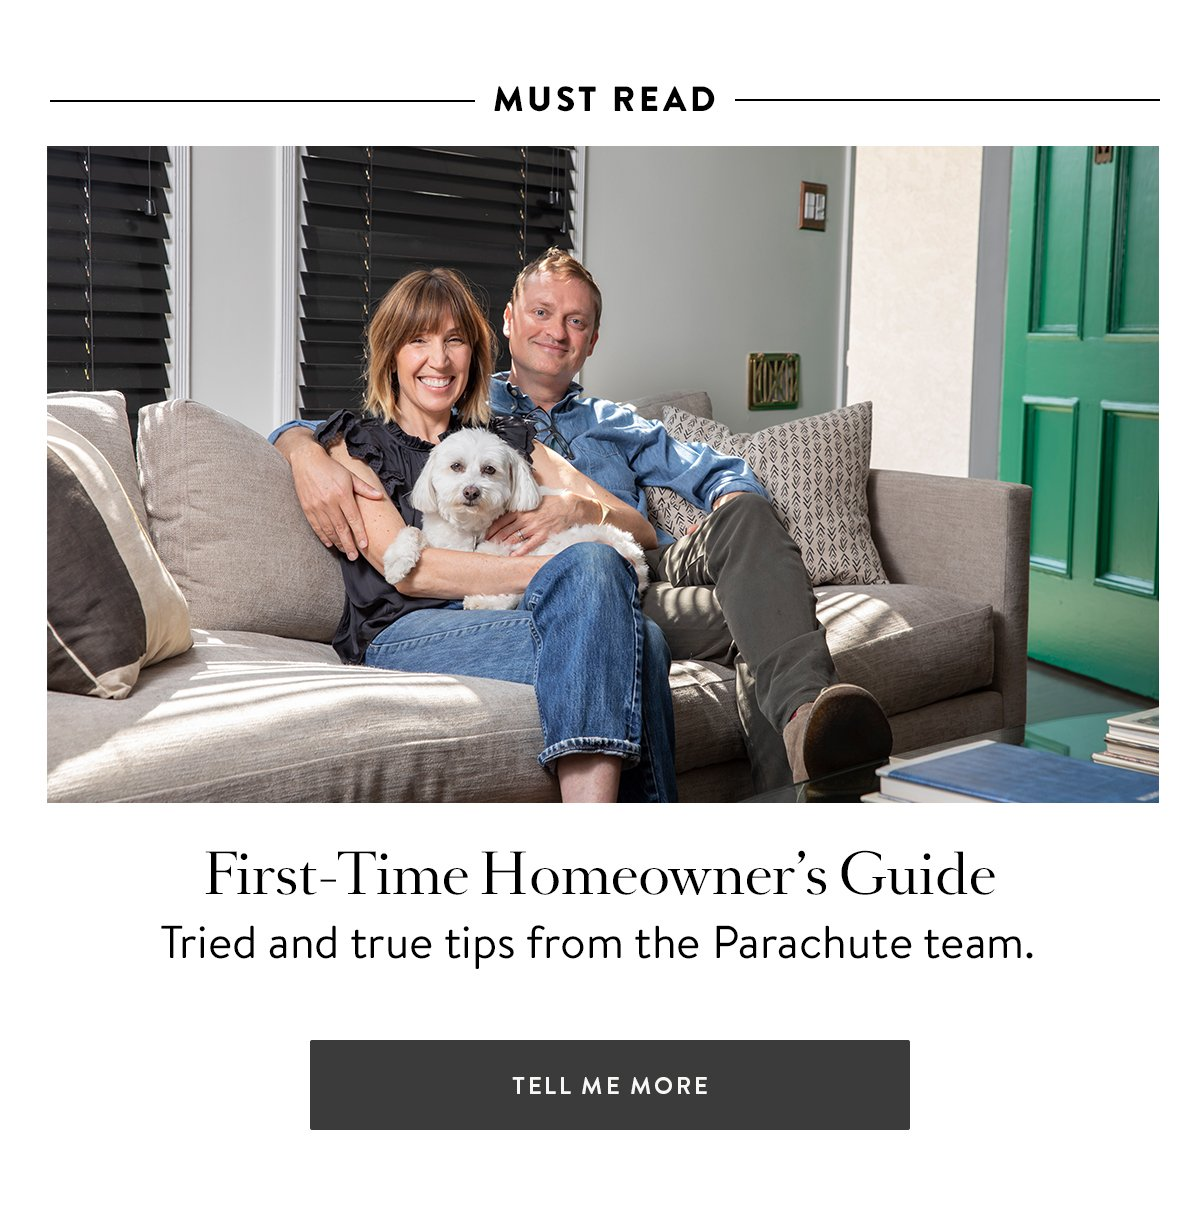 First-Time Homeowner's Guide